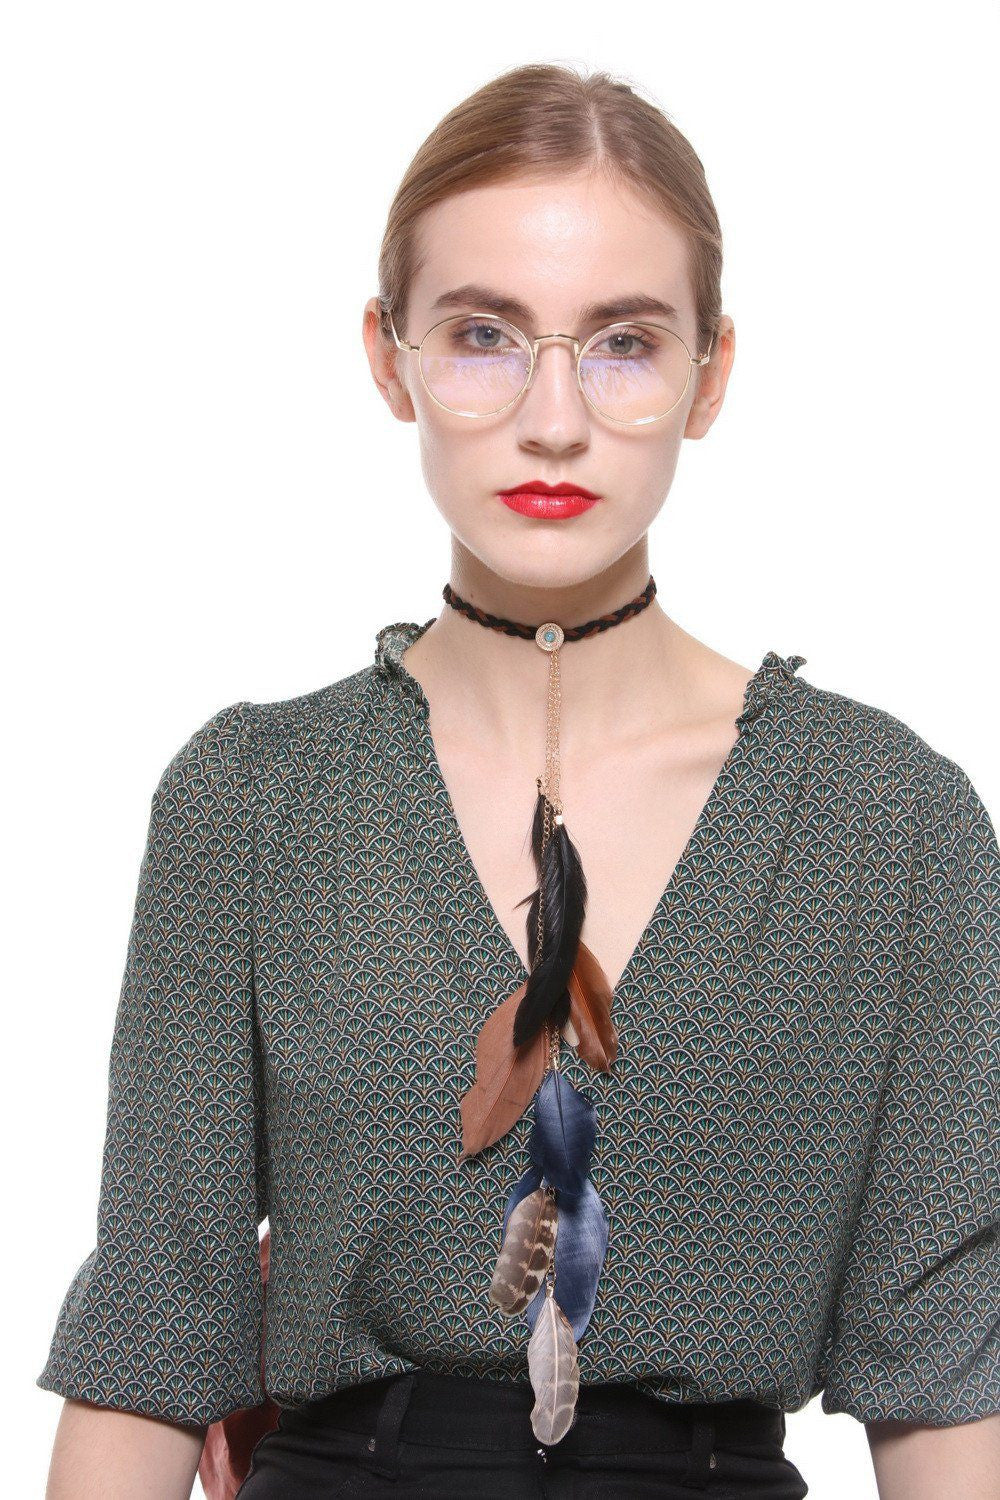 Feather Fringe Braided Choker - Ciduire